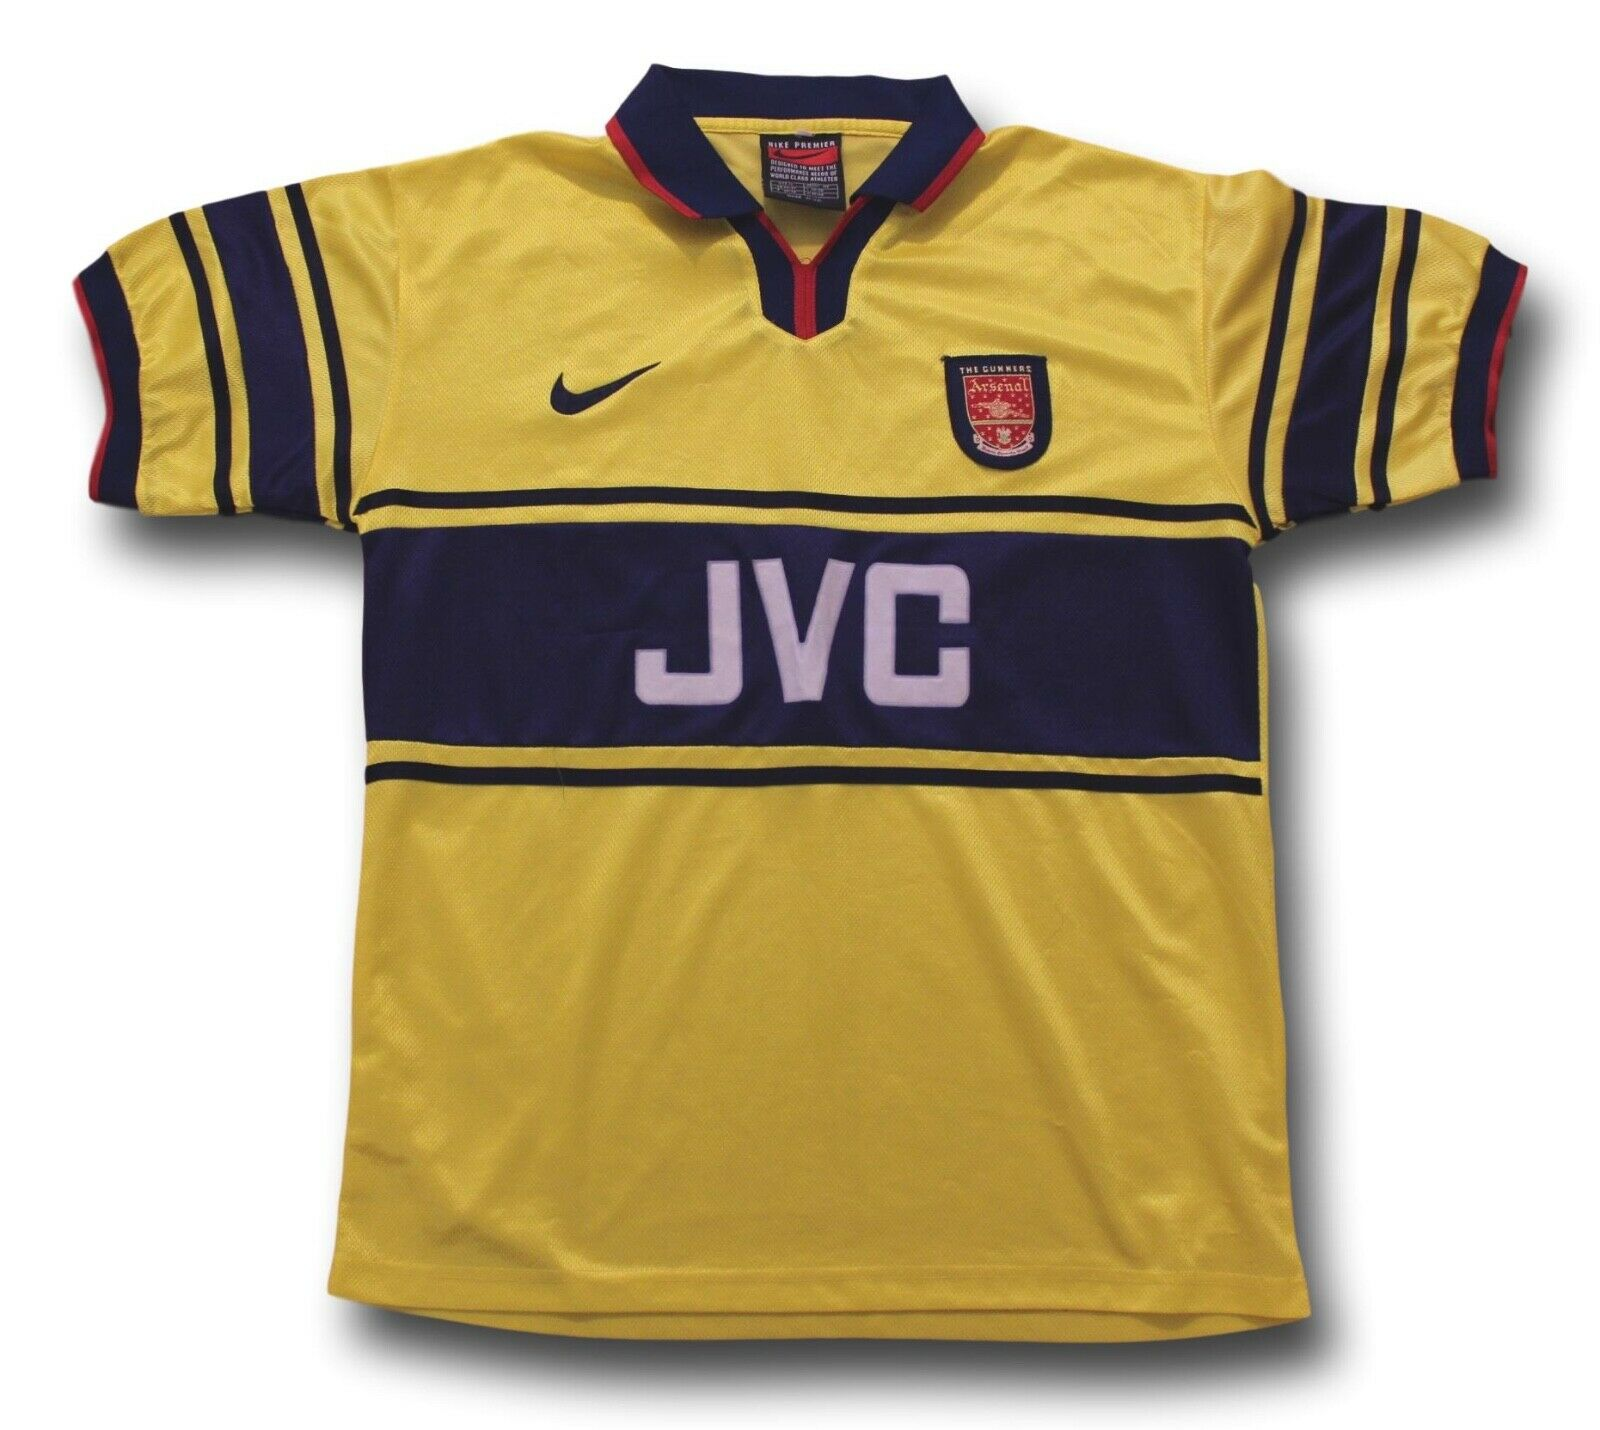 7cde44775 Vintage 1997-99 Arsenal Football Shirt Jersey Mens Size XL Away Soccer  nvcwxf2846-Clothing